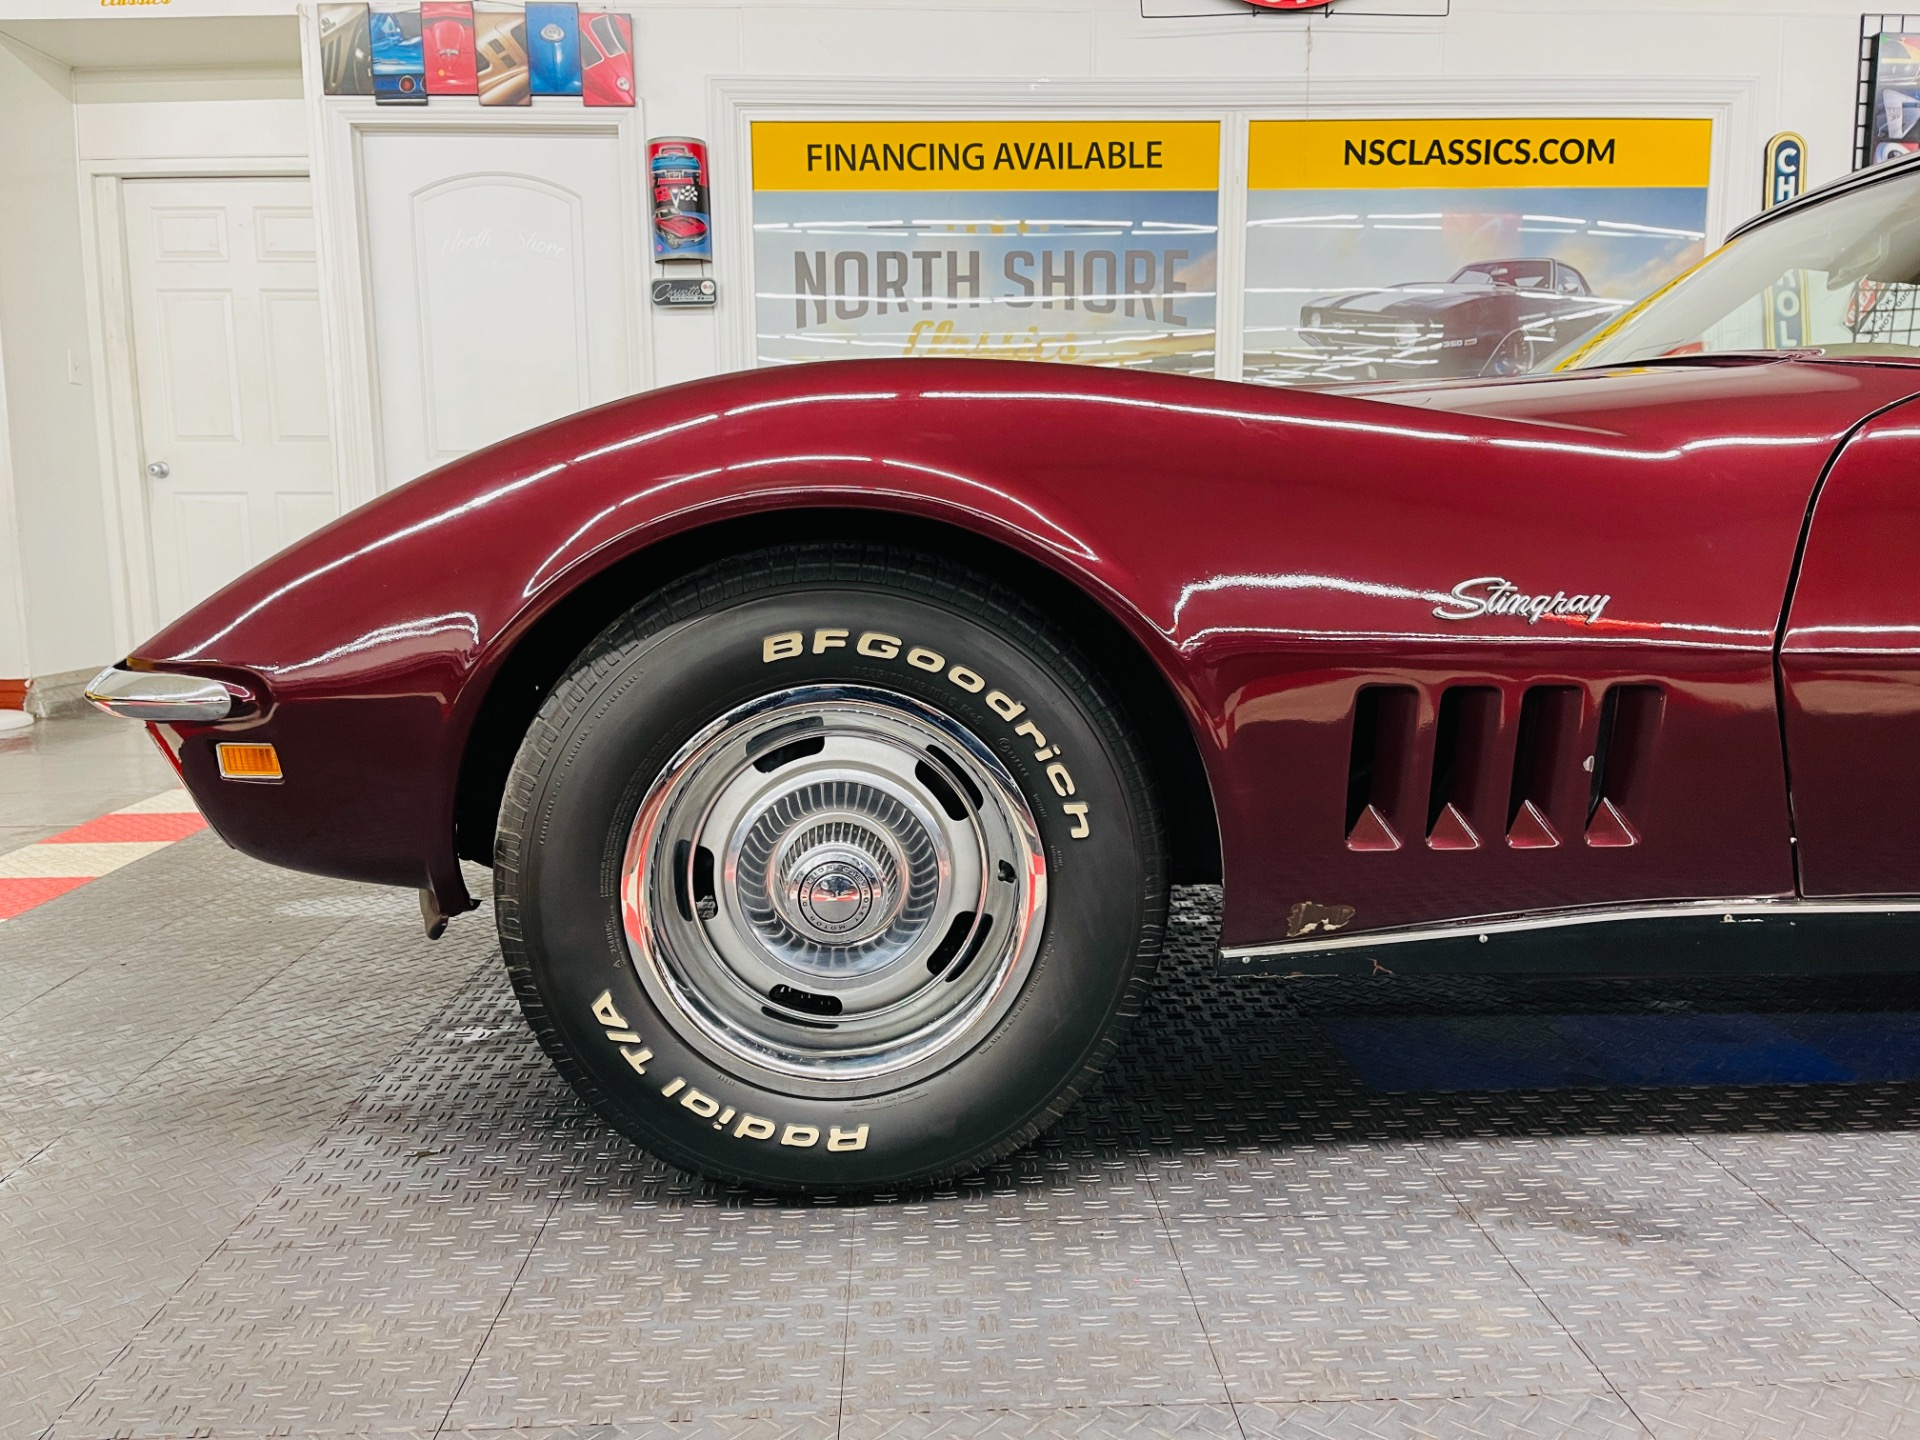 Used 1968 Chevrolet Corvette - 390 HP NUMBERS MATCHING ENGINE - 4 SPEED MANUAL - SEE VIDEO | Mundelein, IL